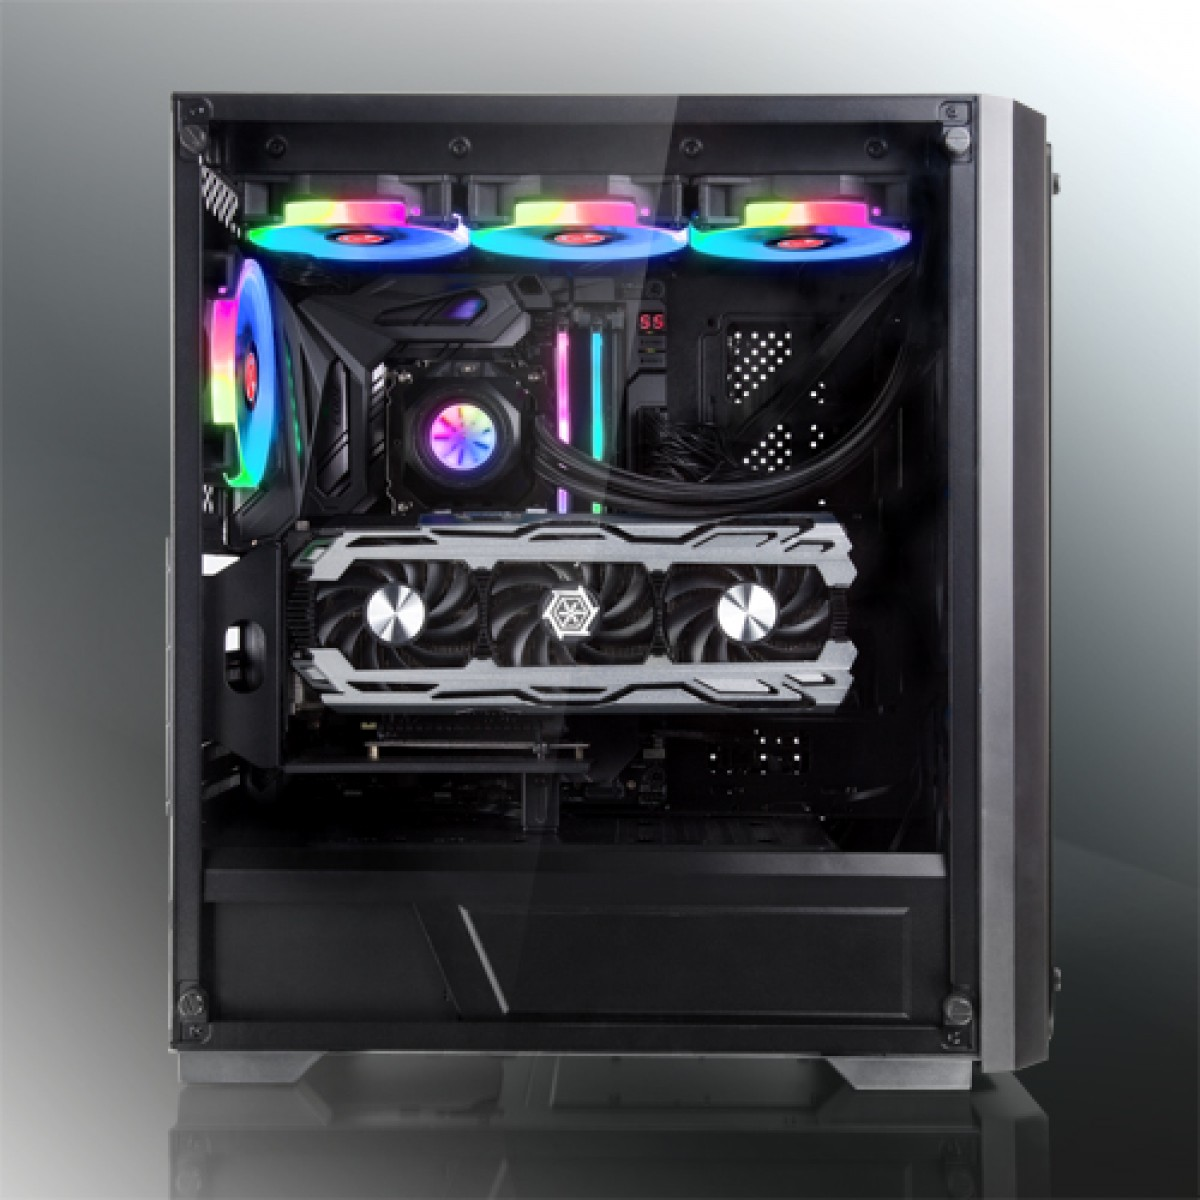 Water Cooler Raijintek ORCUS 280 RBW, 280mm, Intel-AMD, 0R10B00091